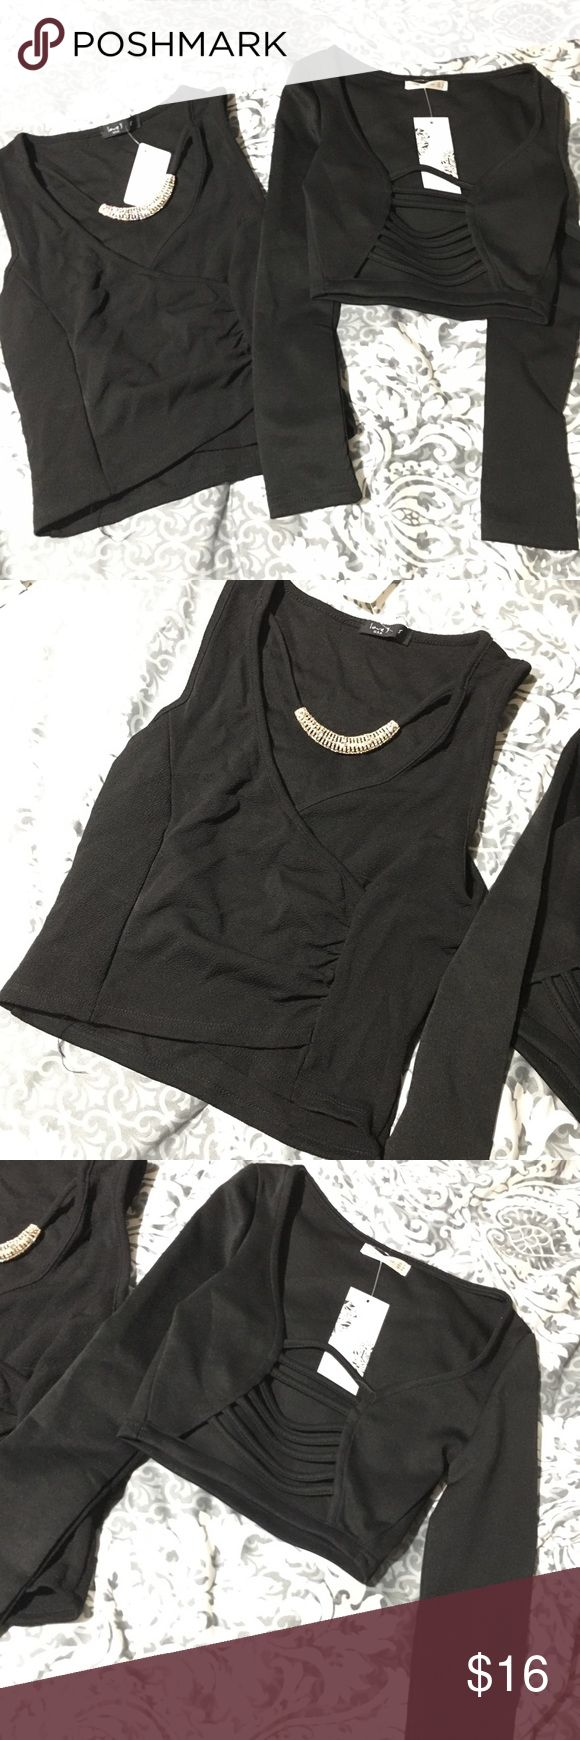 NWT Black going out tops. Xs / S NWT black going out tops. 1 has built in necklace - tank top cropped size small. 1 is cropped long sleeve with strappy front size xs. BRAND NEW! Check out my closet!!! Bundle and save :) Tops